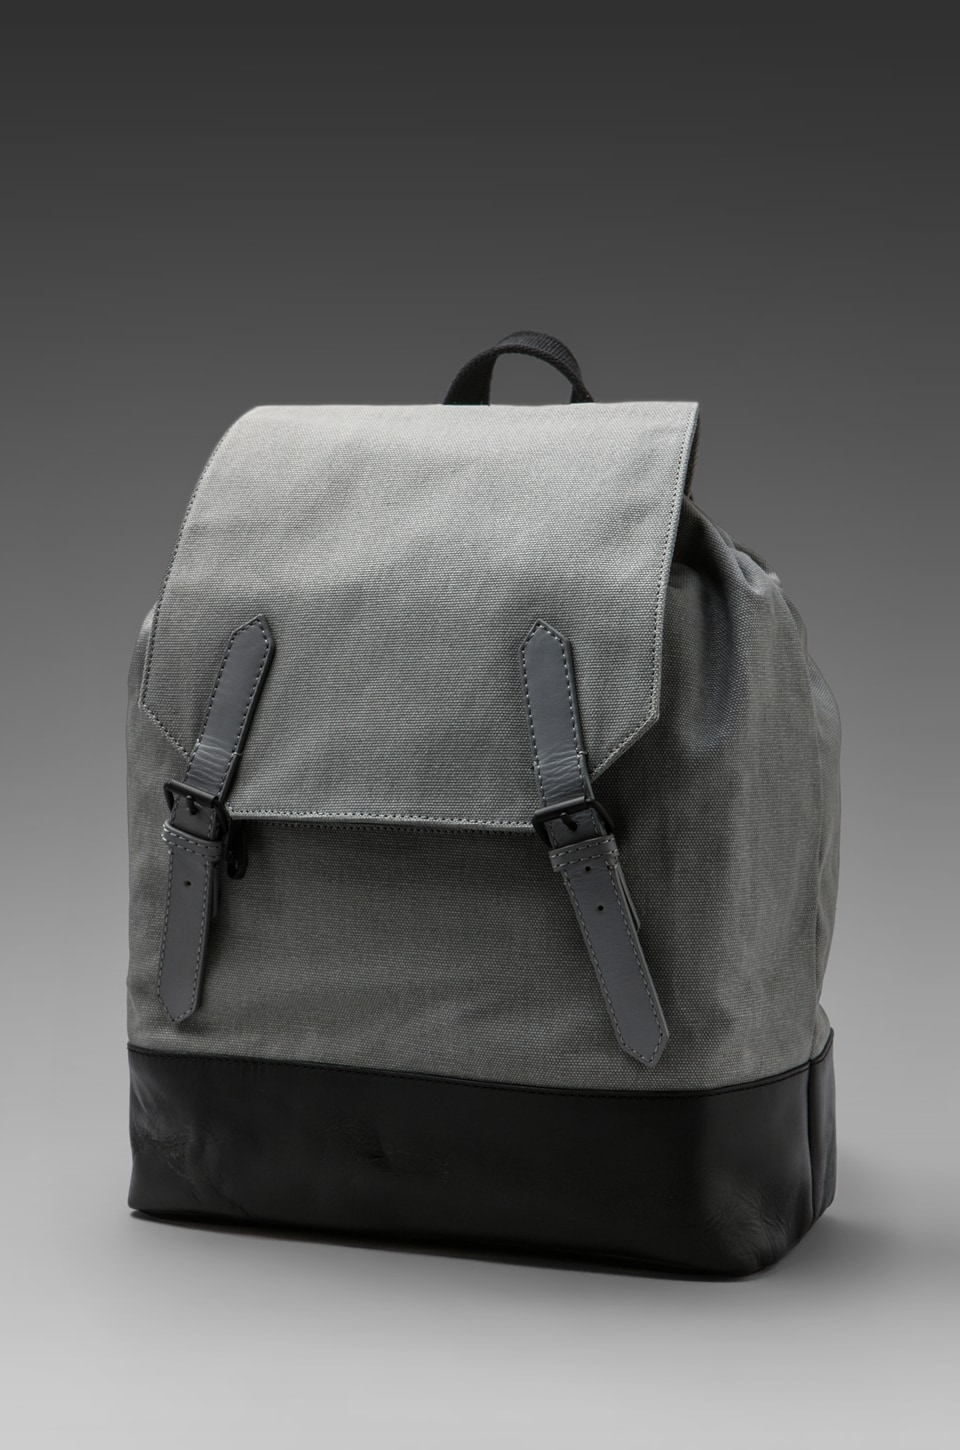 Ben Minkoff Matty Backpack in Grey/Black